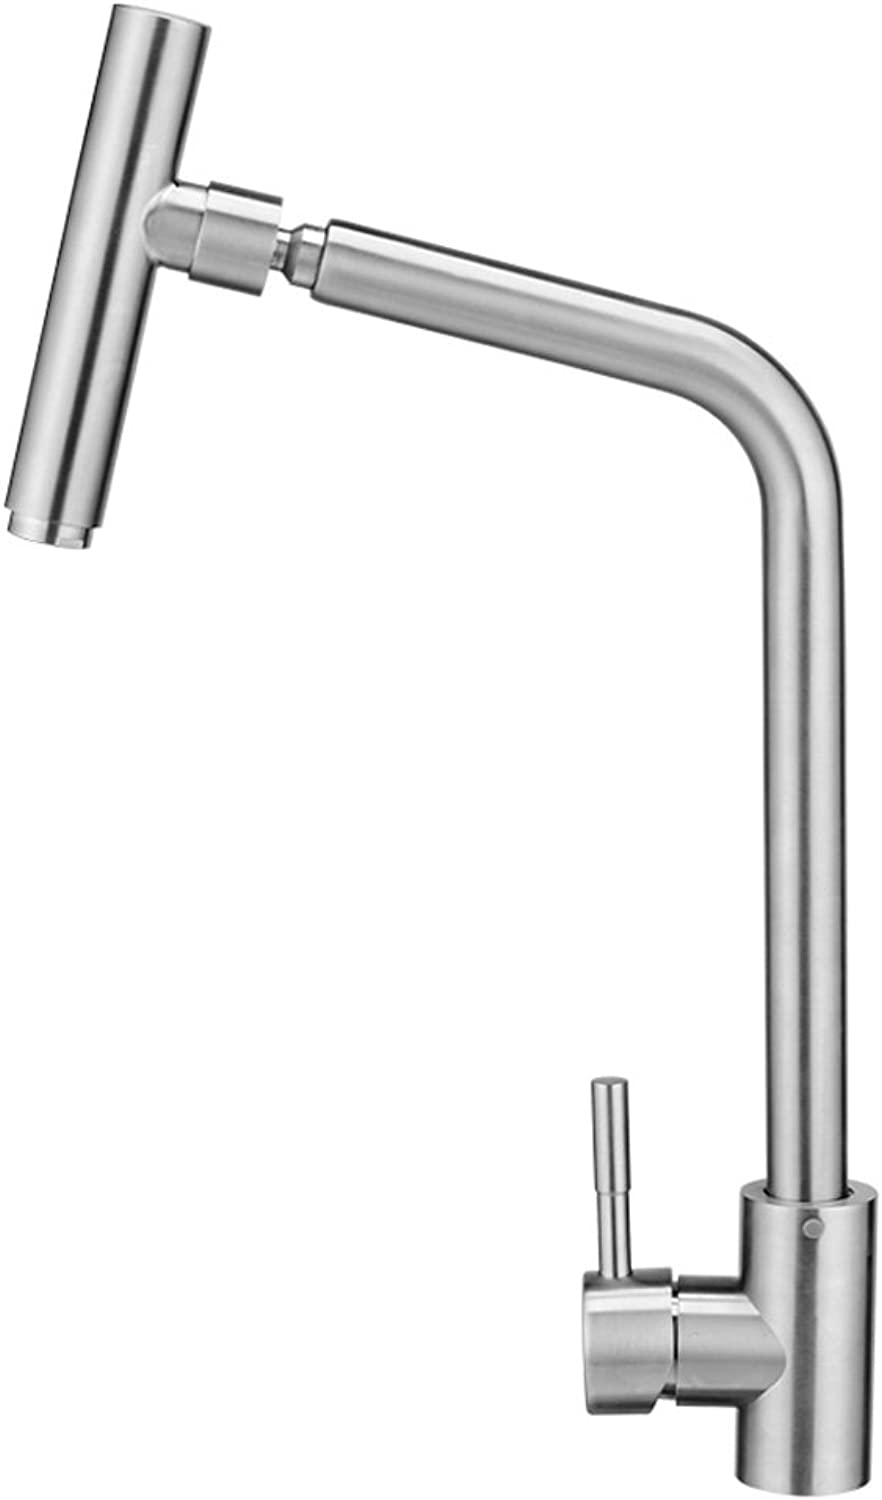 HAODAMAI Sink Faucet Can Be redated 304 Stainless Steel Hot And Cold Water Adjustment Single Hole Bathroom Washbasin Kitchen Brushed Lead-free Aperture Is 32mm To 40mm Can Be Installed